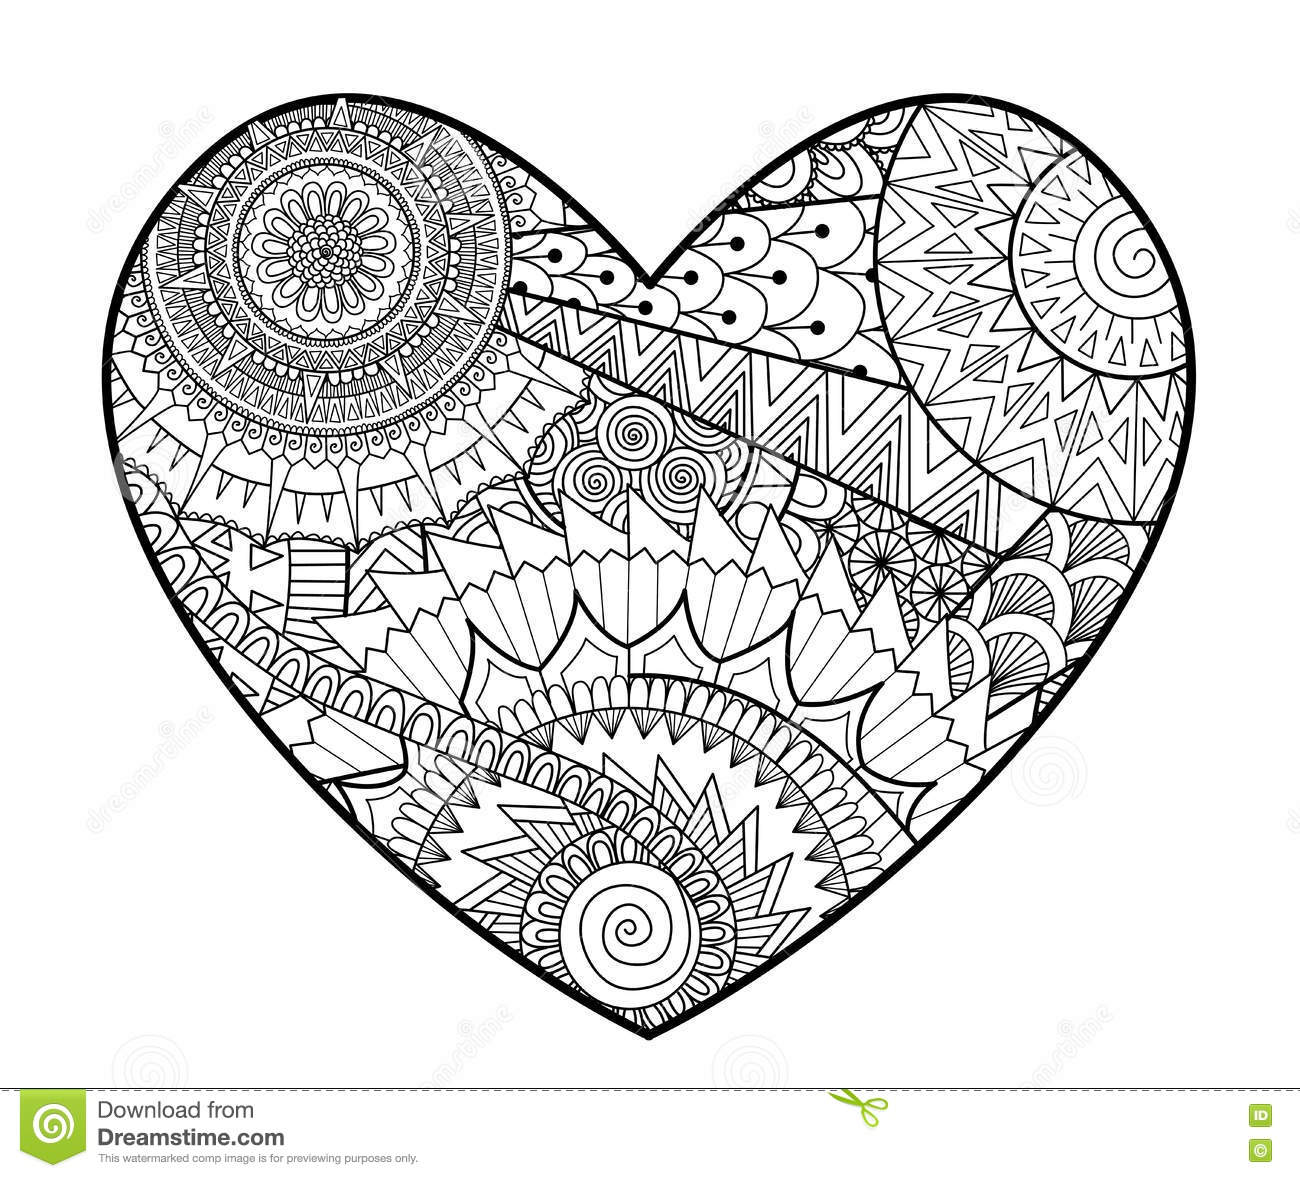 Zendoodle In Heart Shape For Coloring Books For Adult Stock ...